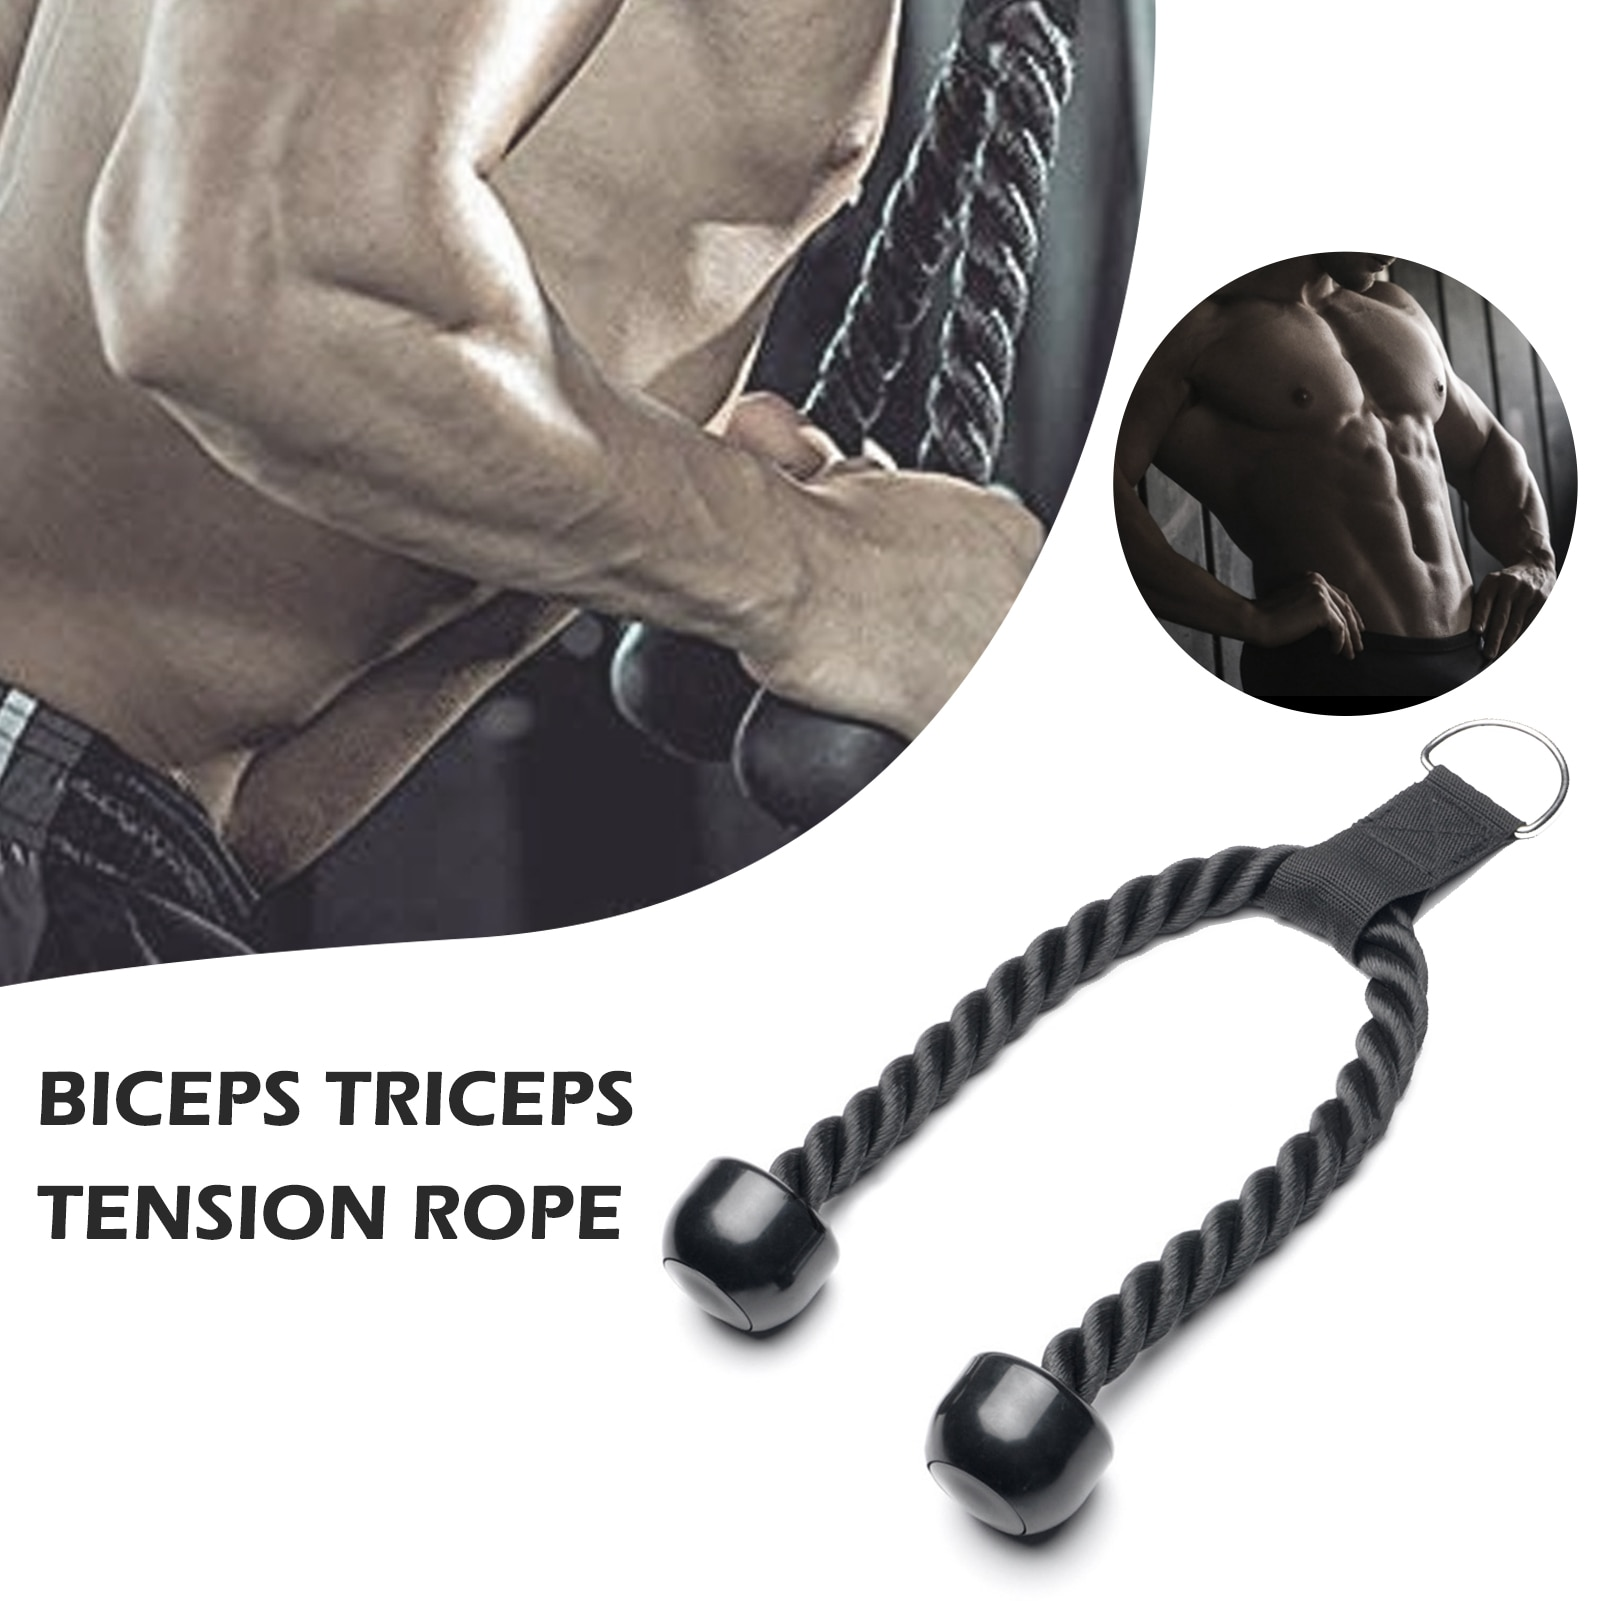 triceps training device push pull down rope muscle pull exercise workout equipment training bodybuilding fitness rope a2l5 Unisex heavy duty Tricep rope pull down biceps triceps back shoulder abdominal muscles muscle training rope